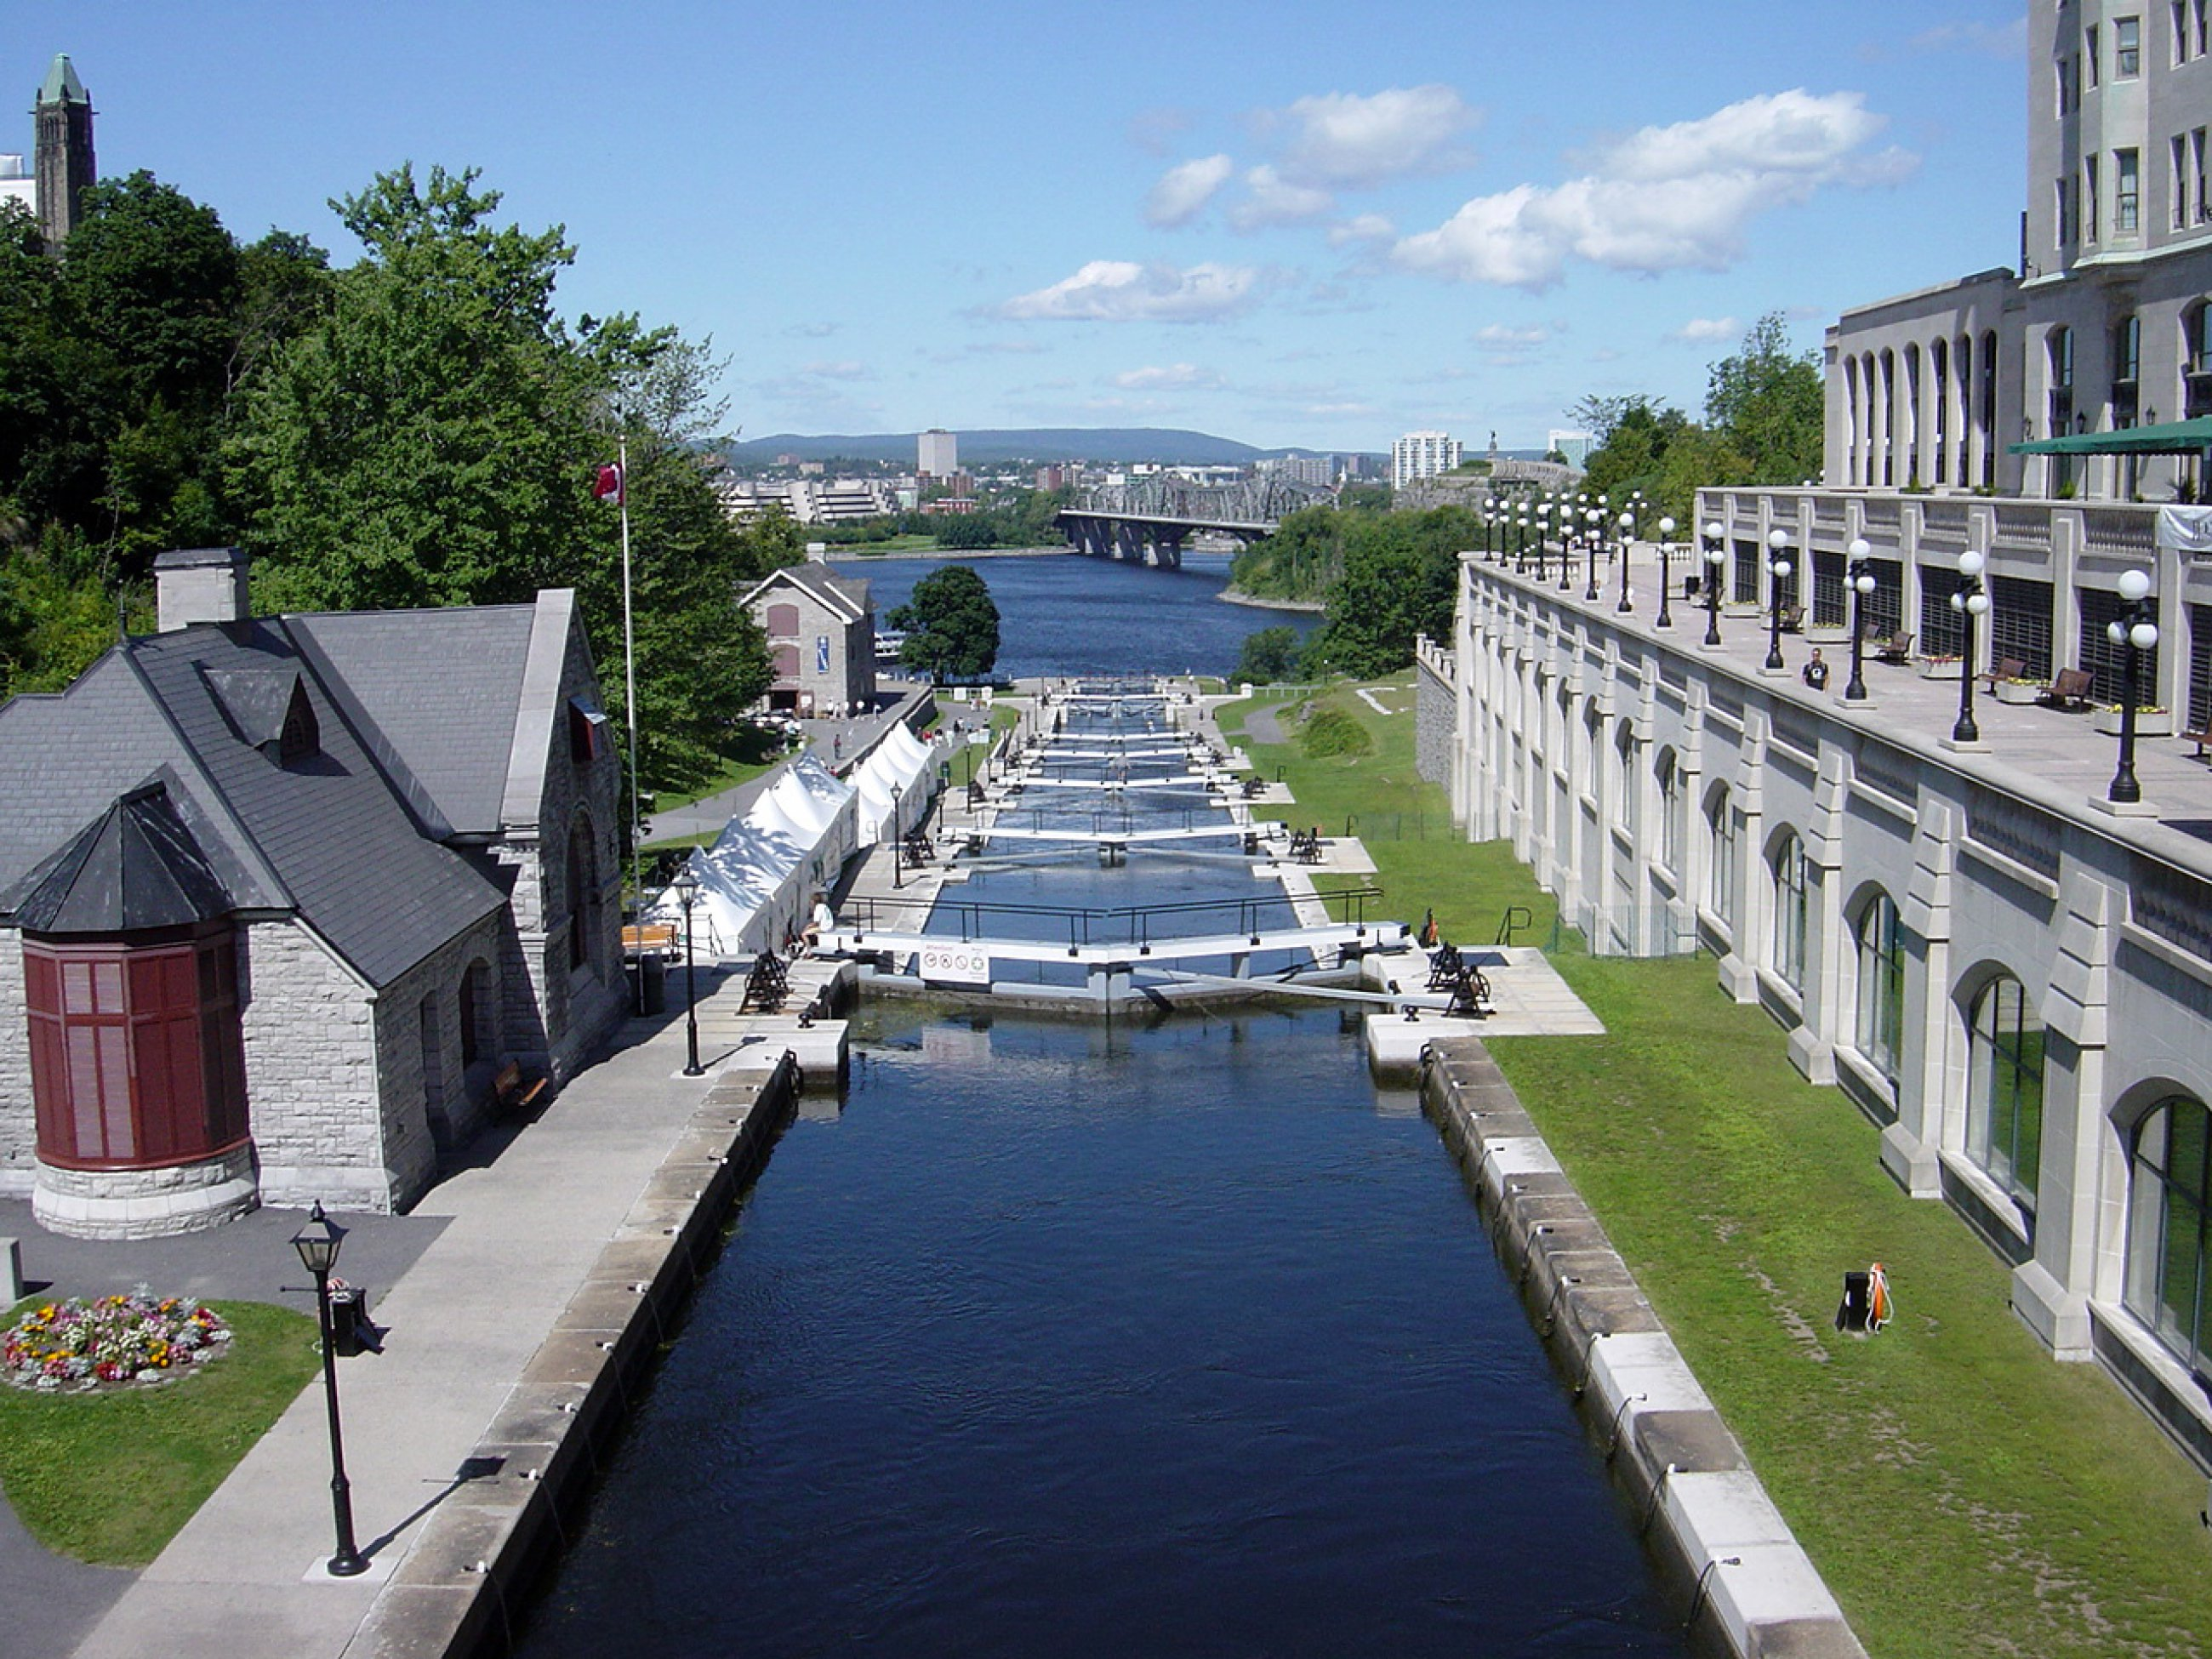 https://bubo.sk/uploads/galleries/5003/rideau-canal.jpg